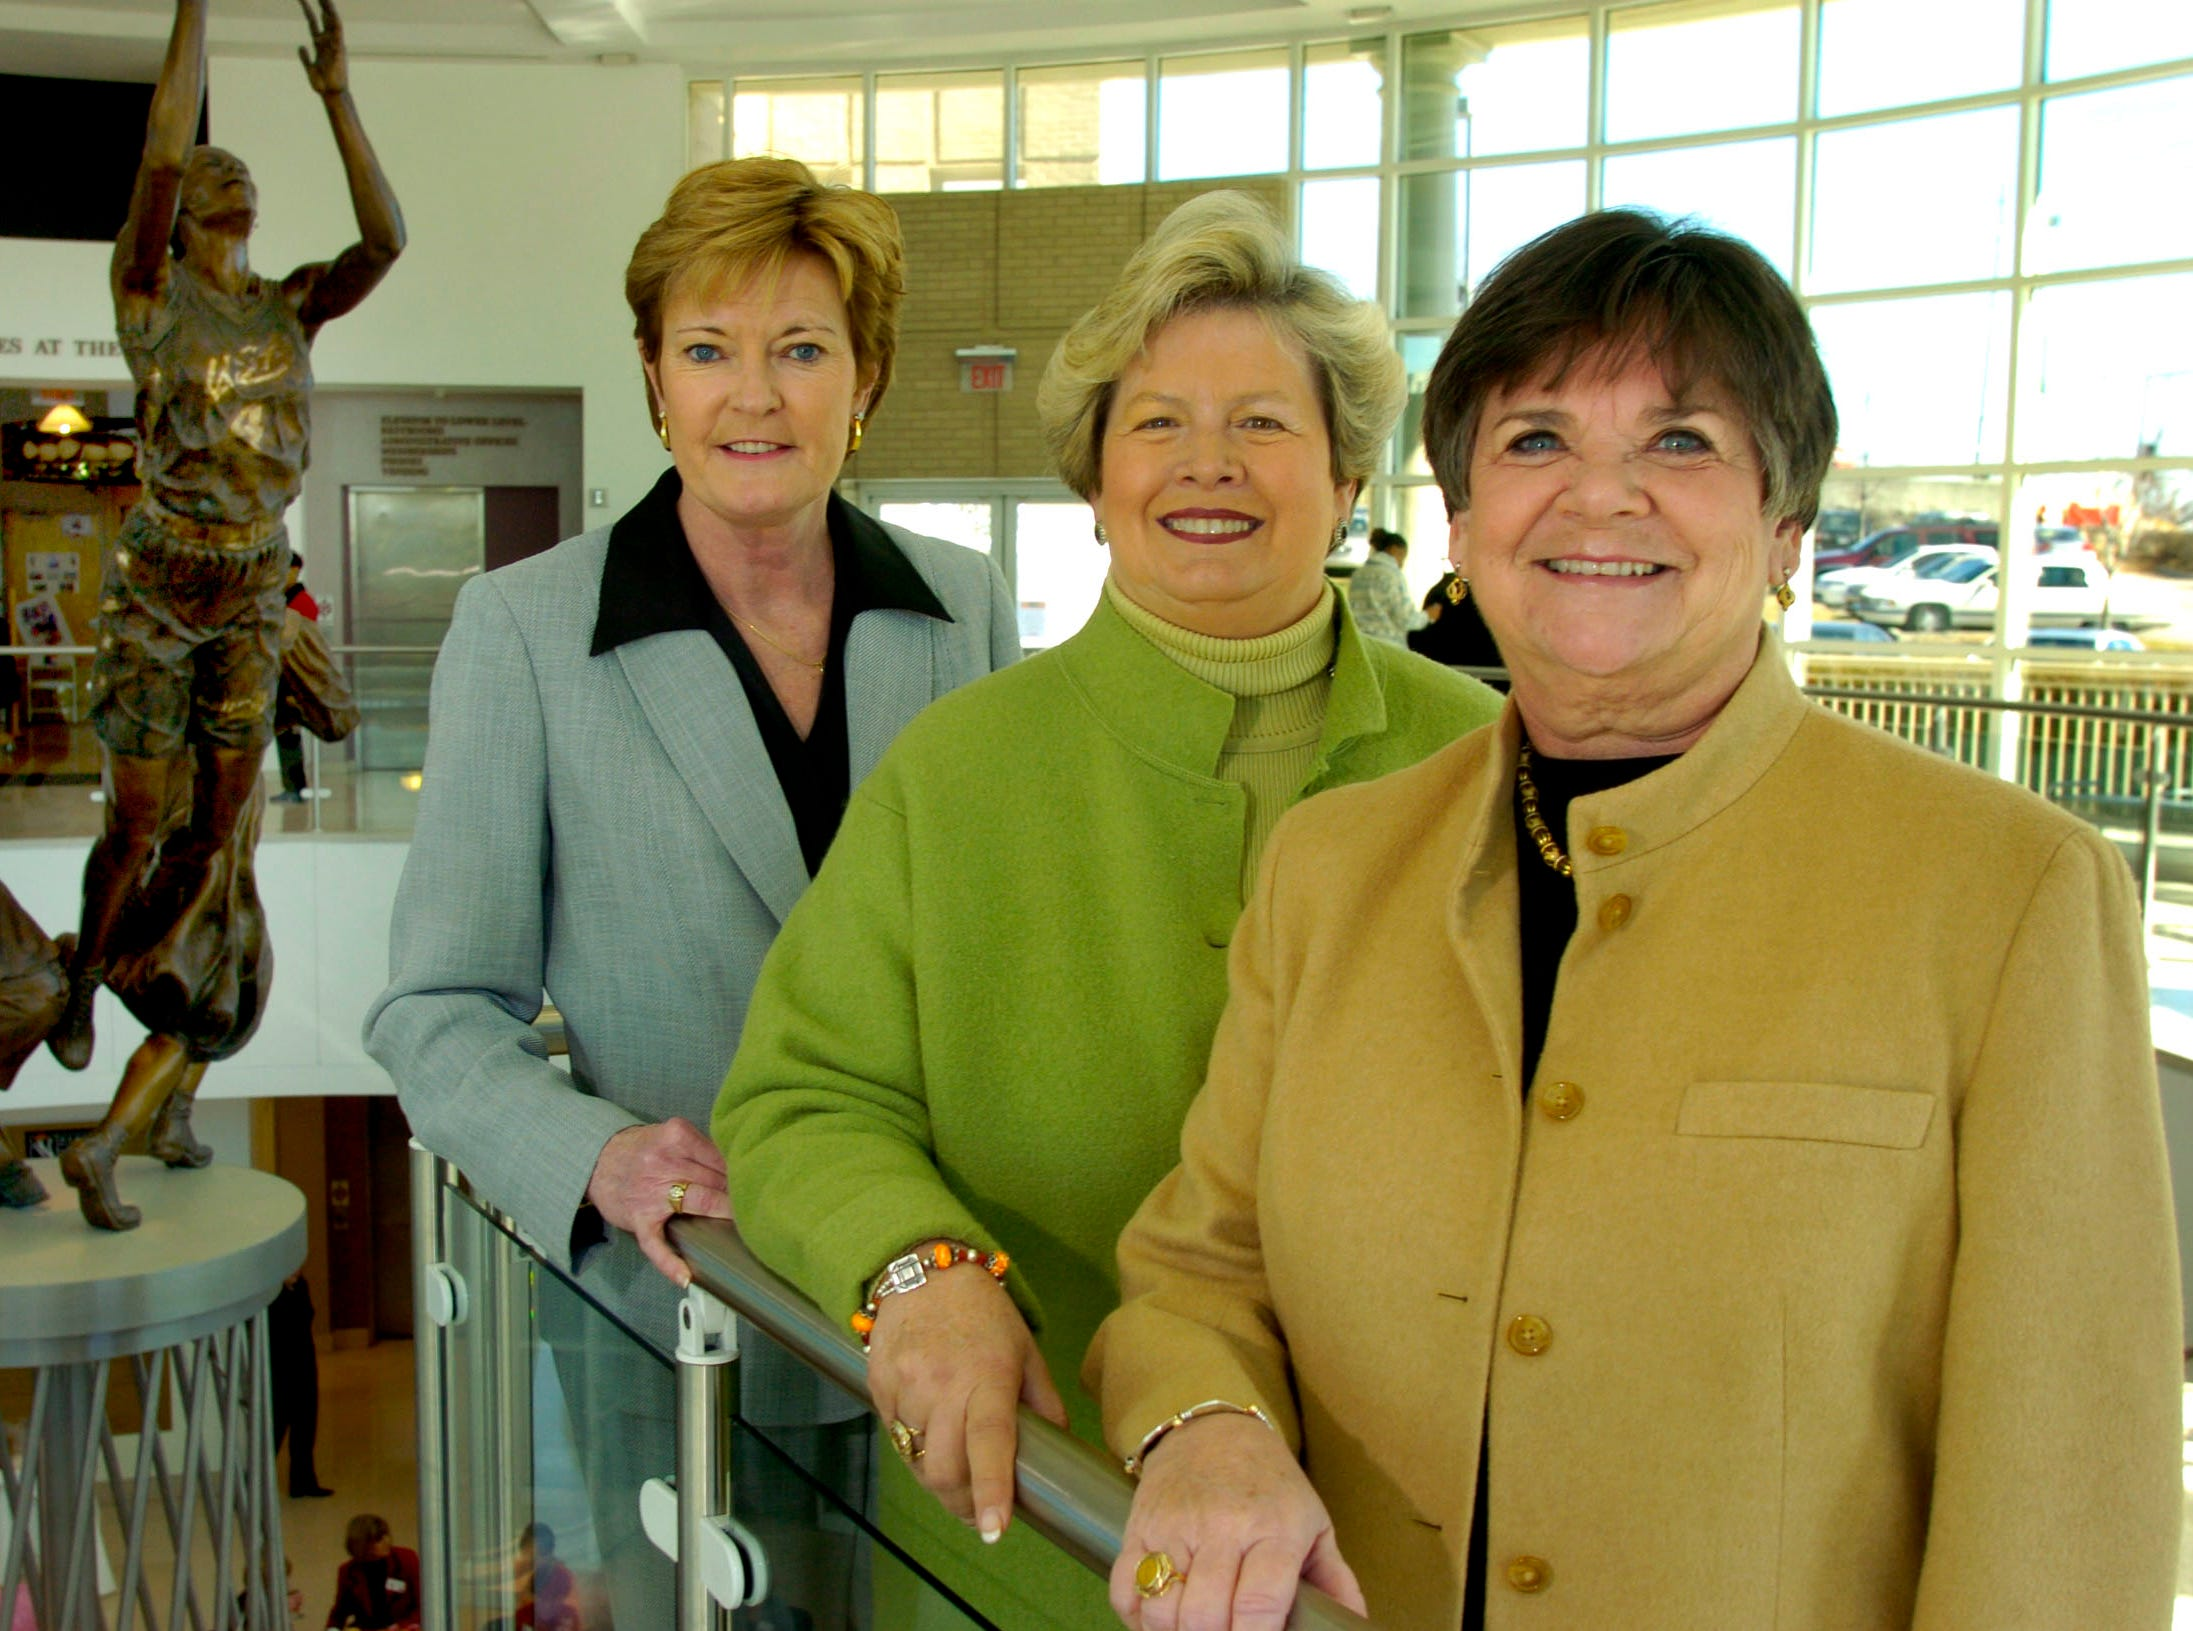 In a Feb. 14, 2006 photograph, Pat Summitt, Lady Vols basketball coach, left, Joan Cronan, UT athletic department, and Gloria Ray, CEO of the Tourism and Sports Corp. are seen at the Women's Basketball Hall of Fame.